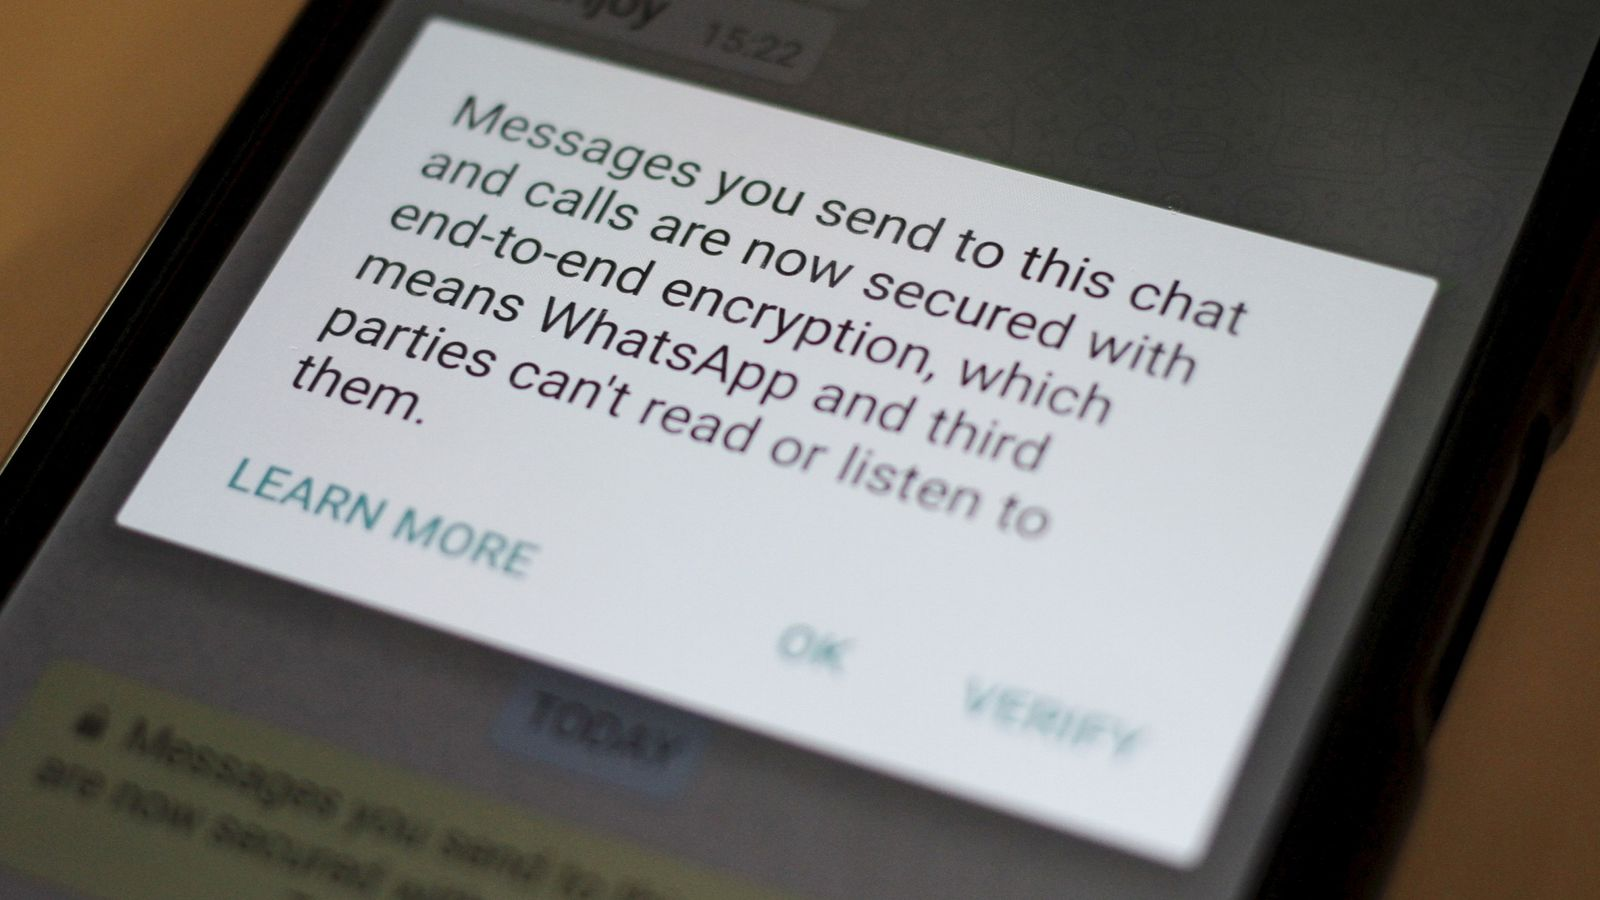 WhatsApp denies Government access to encrypted messages